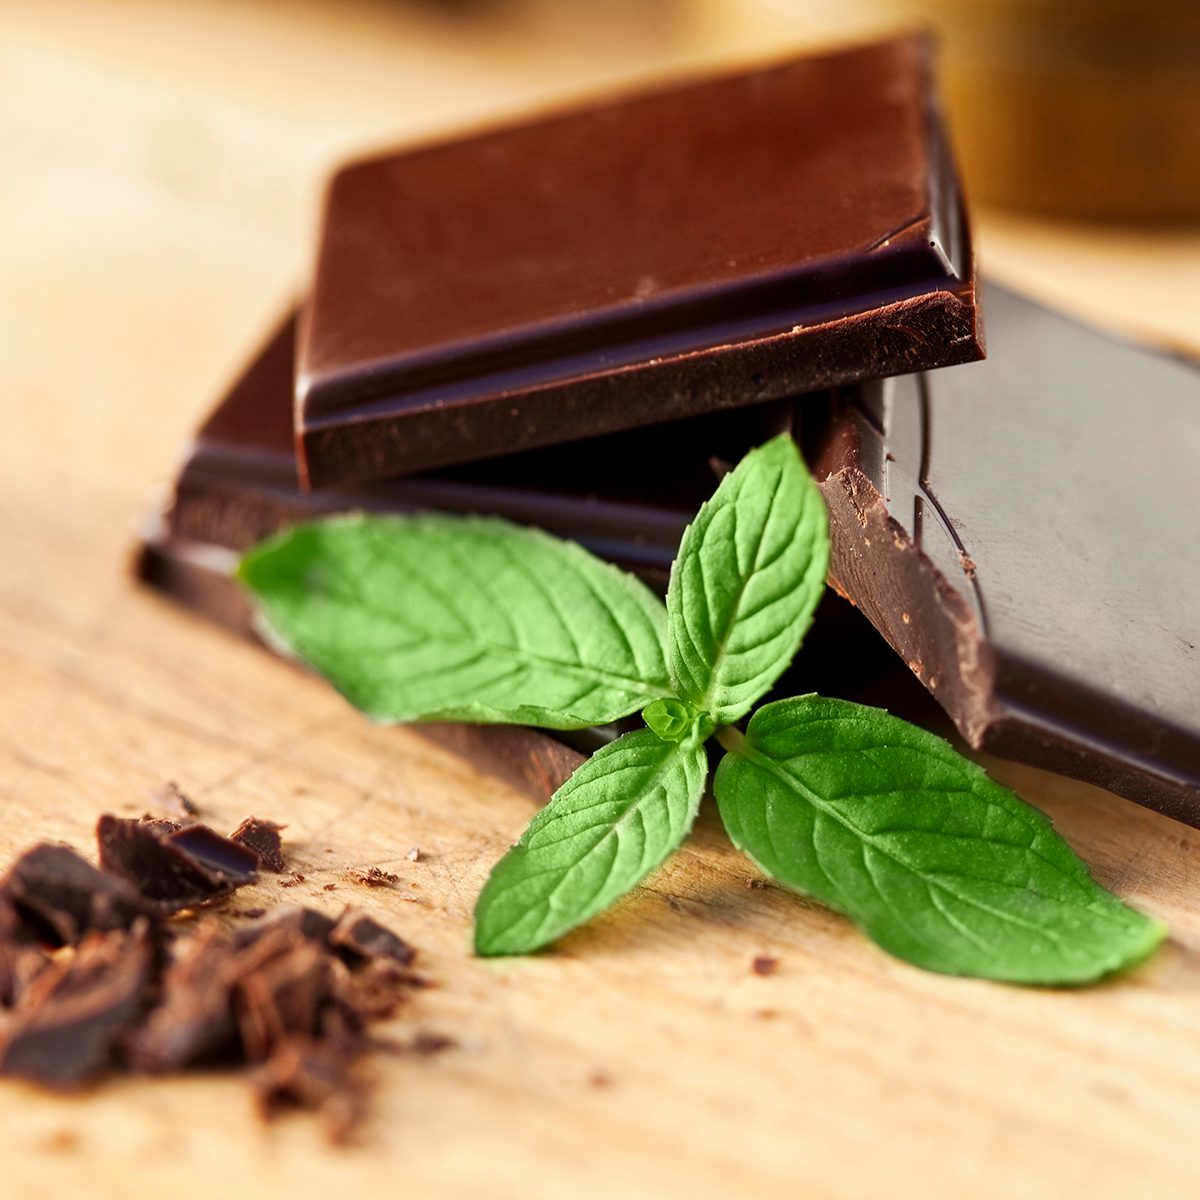 Chocolate and mint on a wooden table. Shallow depth of field.